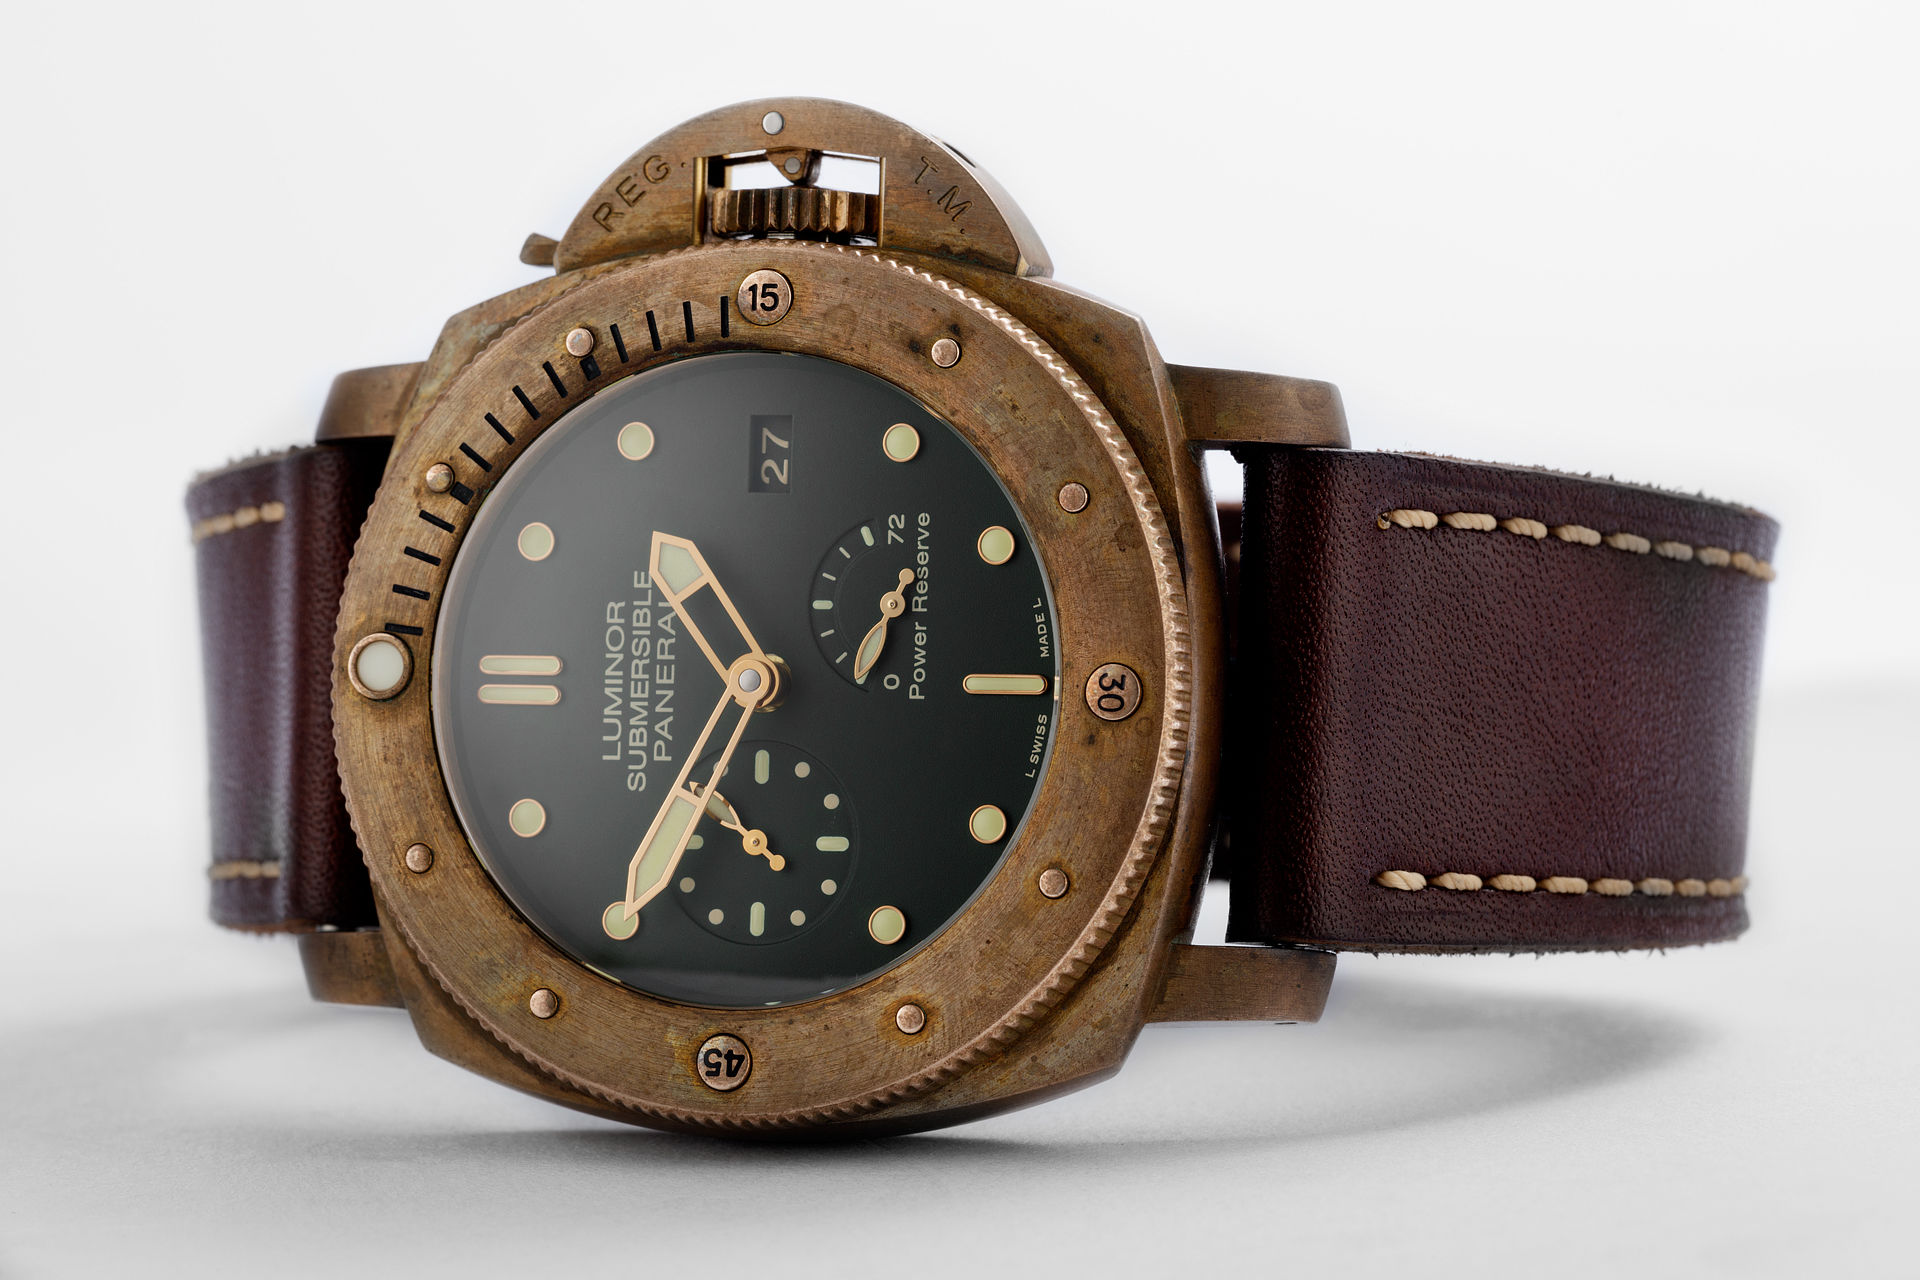 ref PAM00507 | 'Bronzo' Limited Edition | Panerai Luminor Submersible